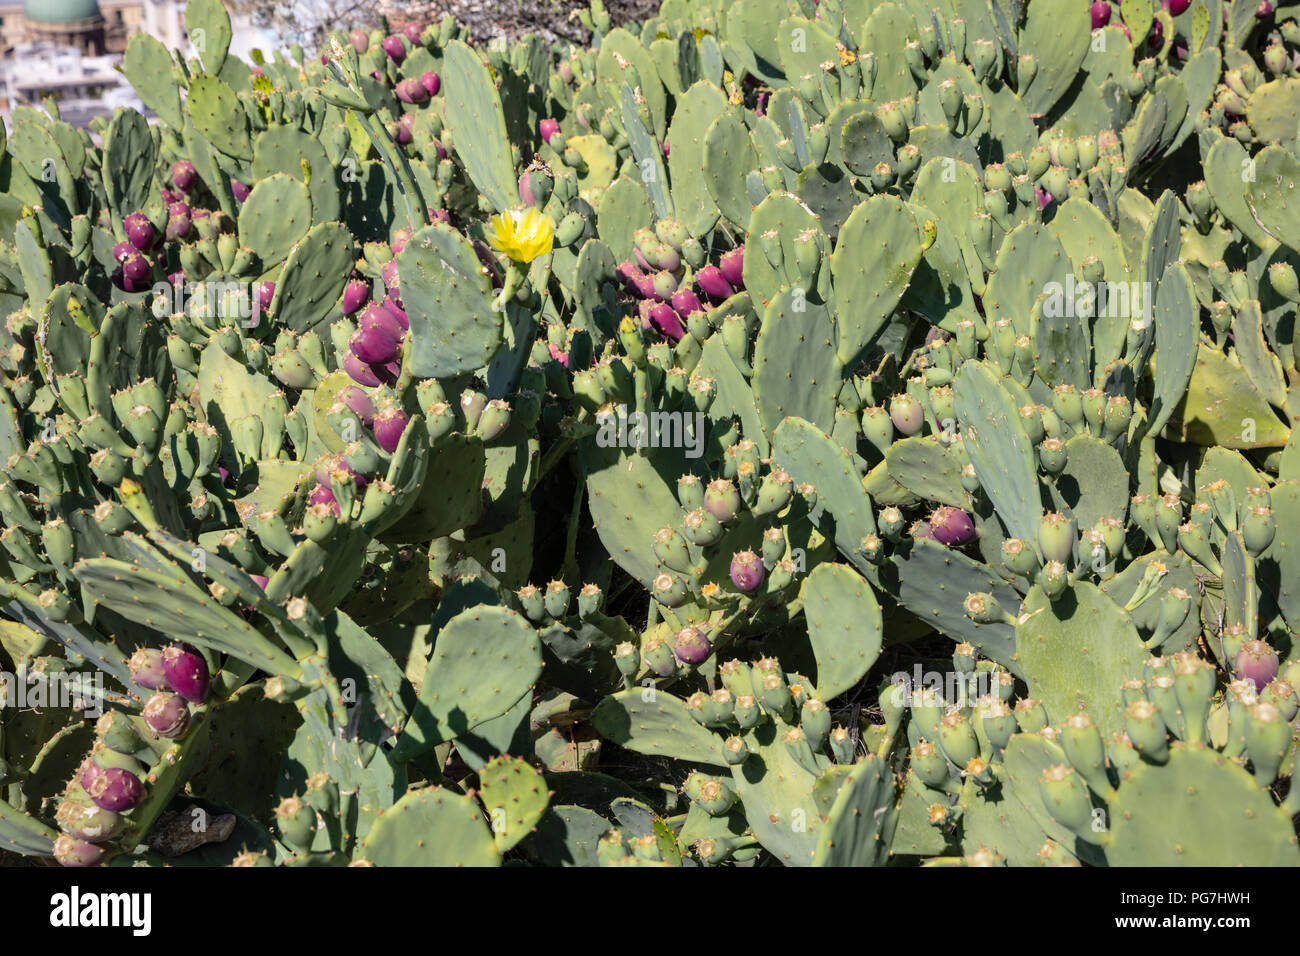 Close up of prickle pears fruits background, wallpaper. - Stock Image